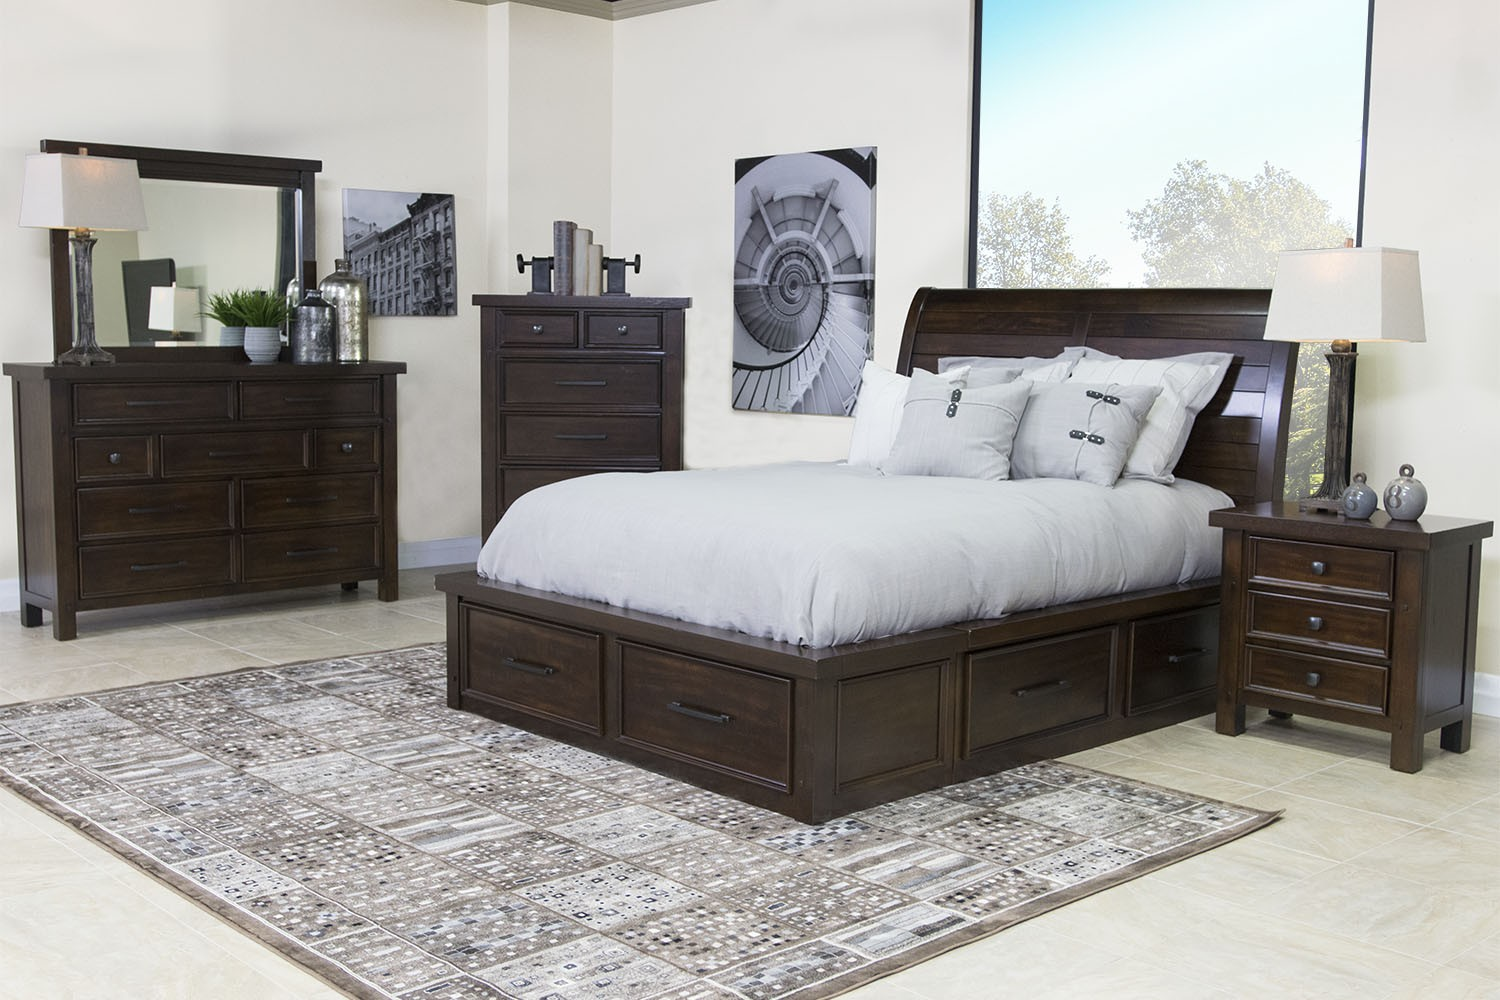 Sonoma King Storage Bed In Brown A Image 7